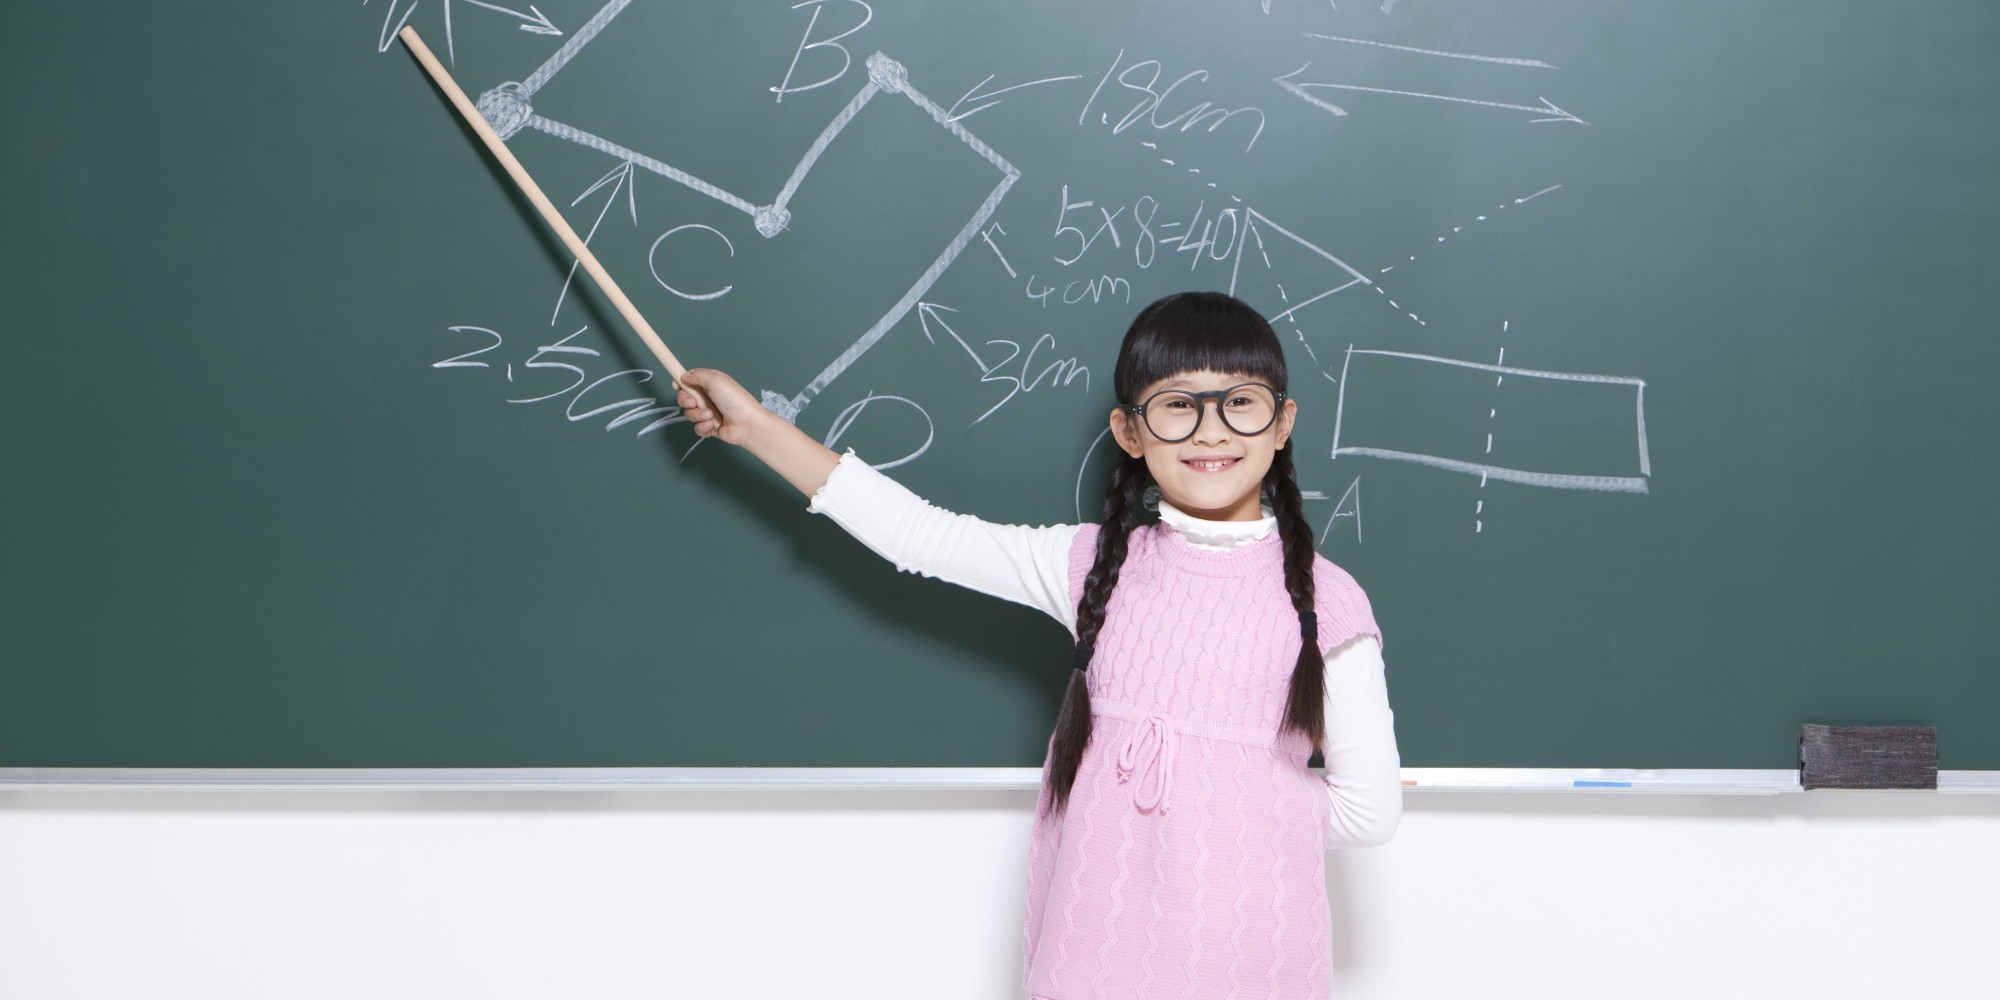 teacher experience personal education kid child reform acting abroad failed lessons four playing succeed pointing blackboard learning matter medium martinez